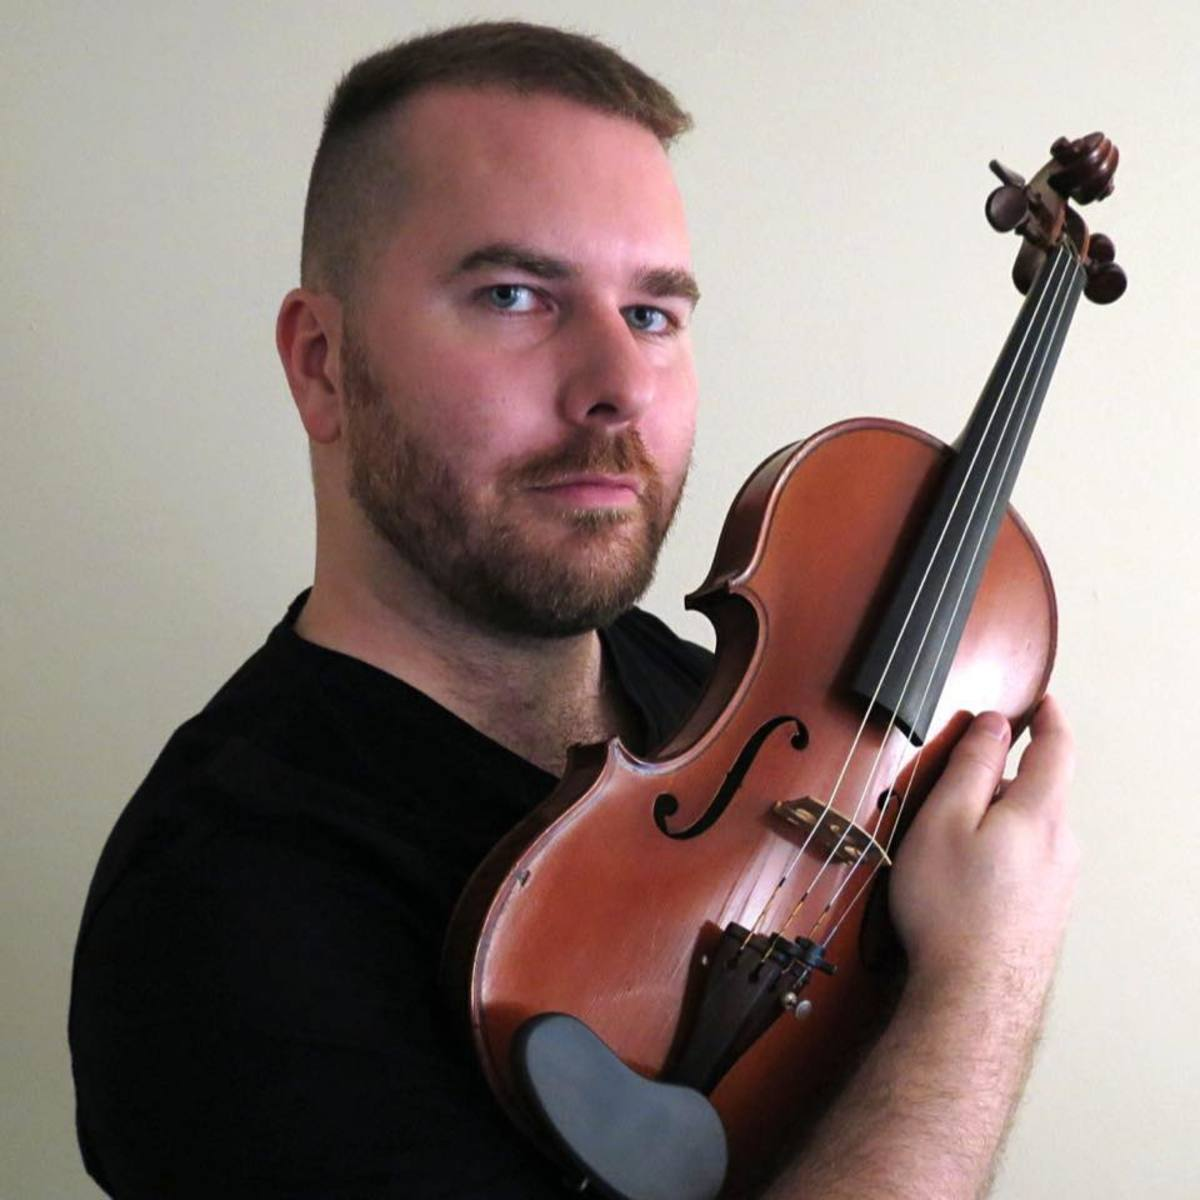 An Interview with Video Game Composer and Violinist Jeff Ball